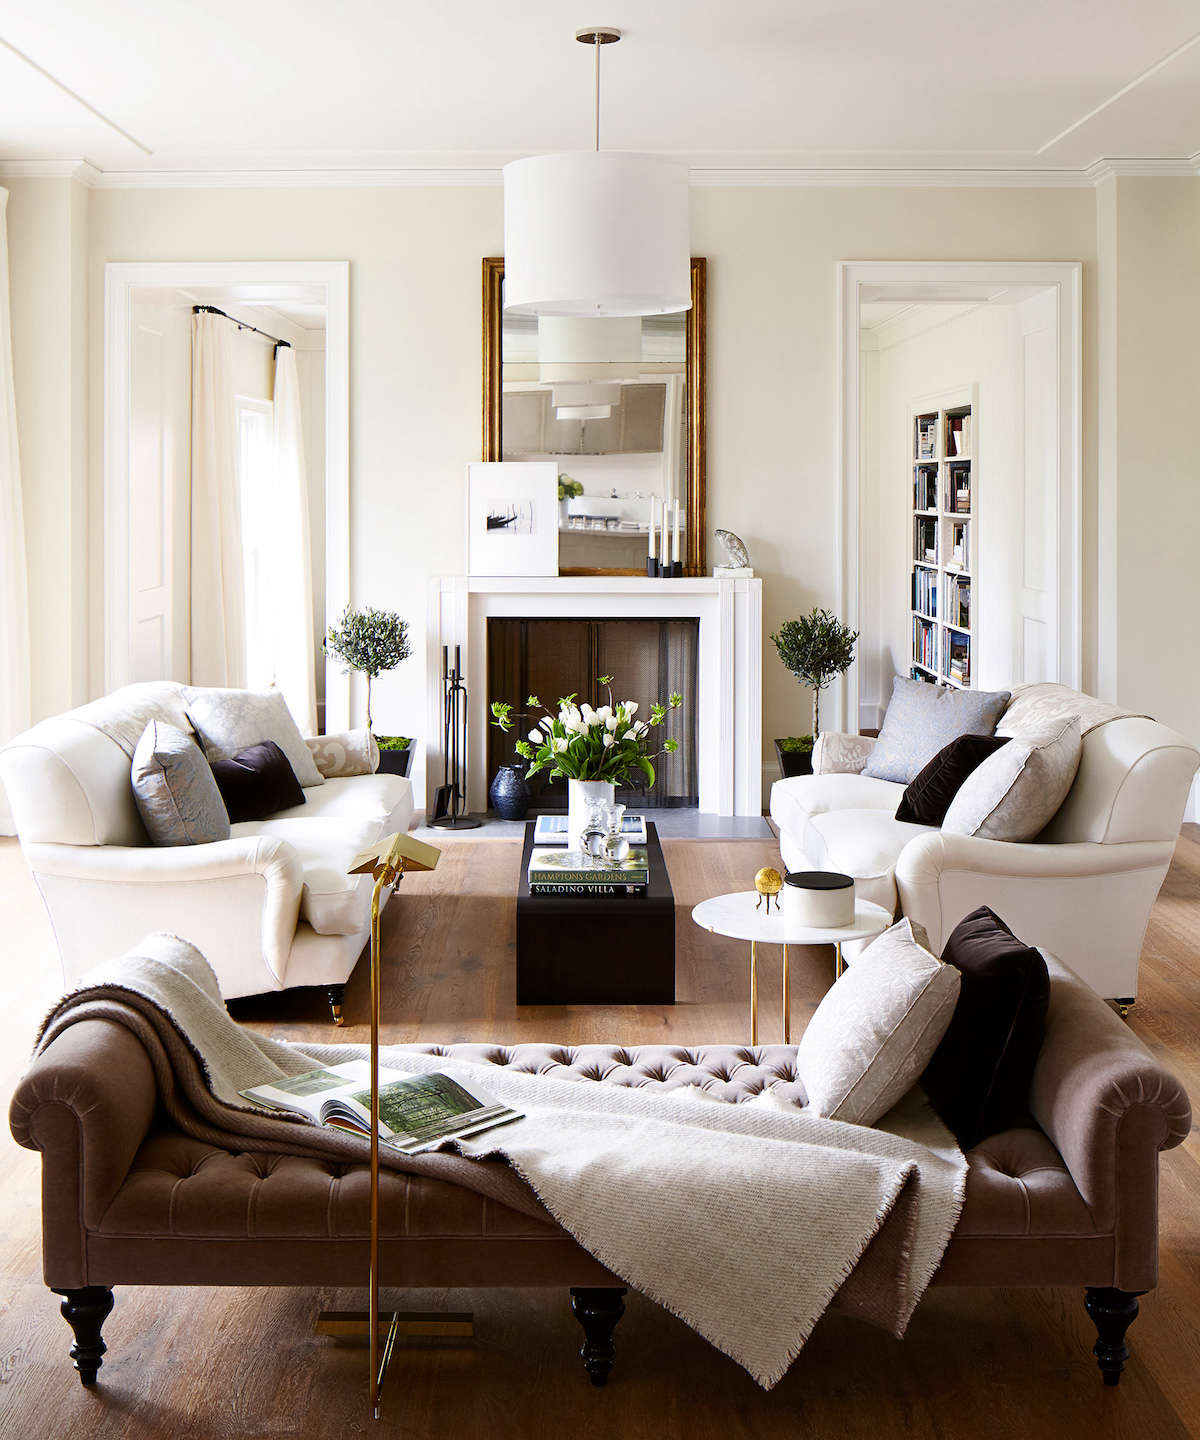 common paint colors for living rooms large pictures room ireland 10 with cult followings architects all time favorite jessica speeckaert of chambers in mill valley california says clunch by